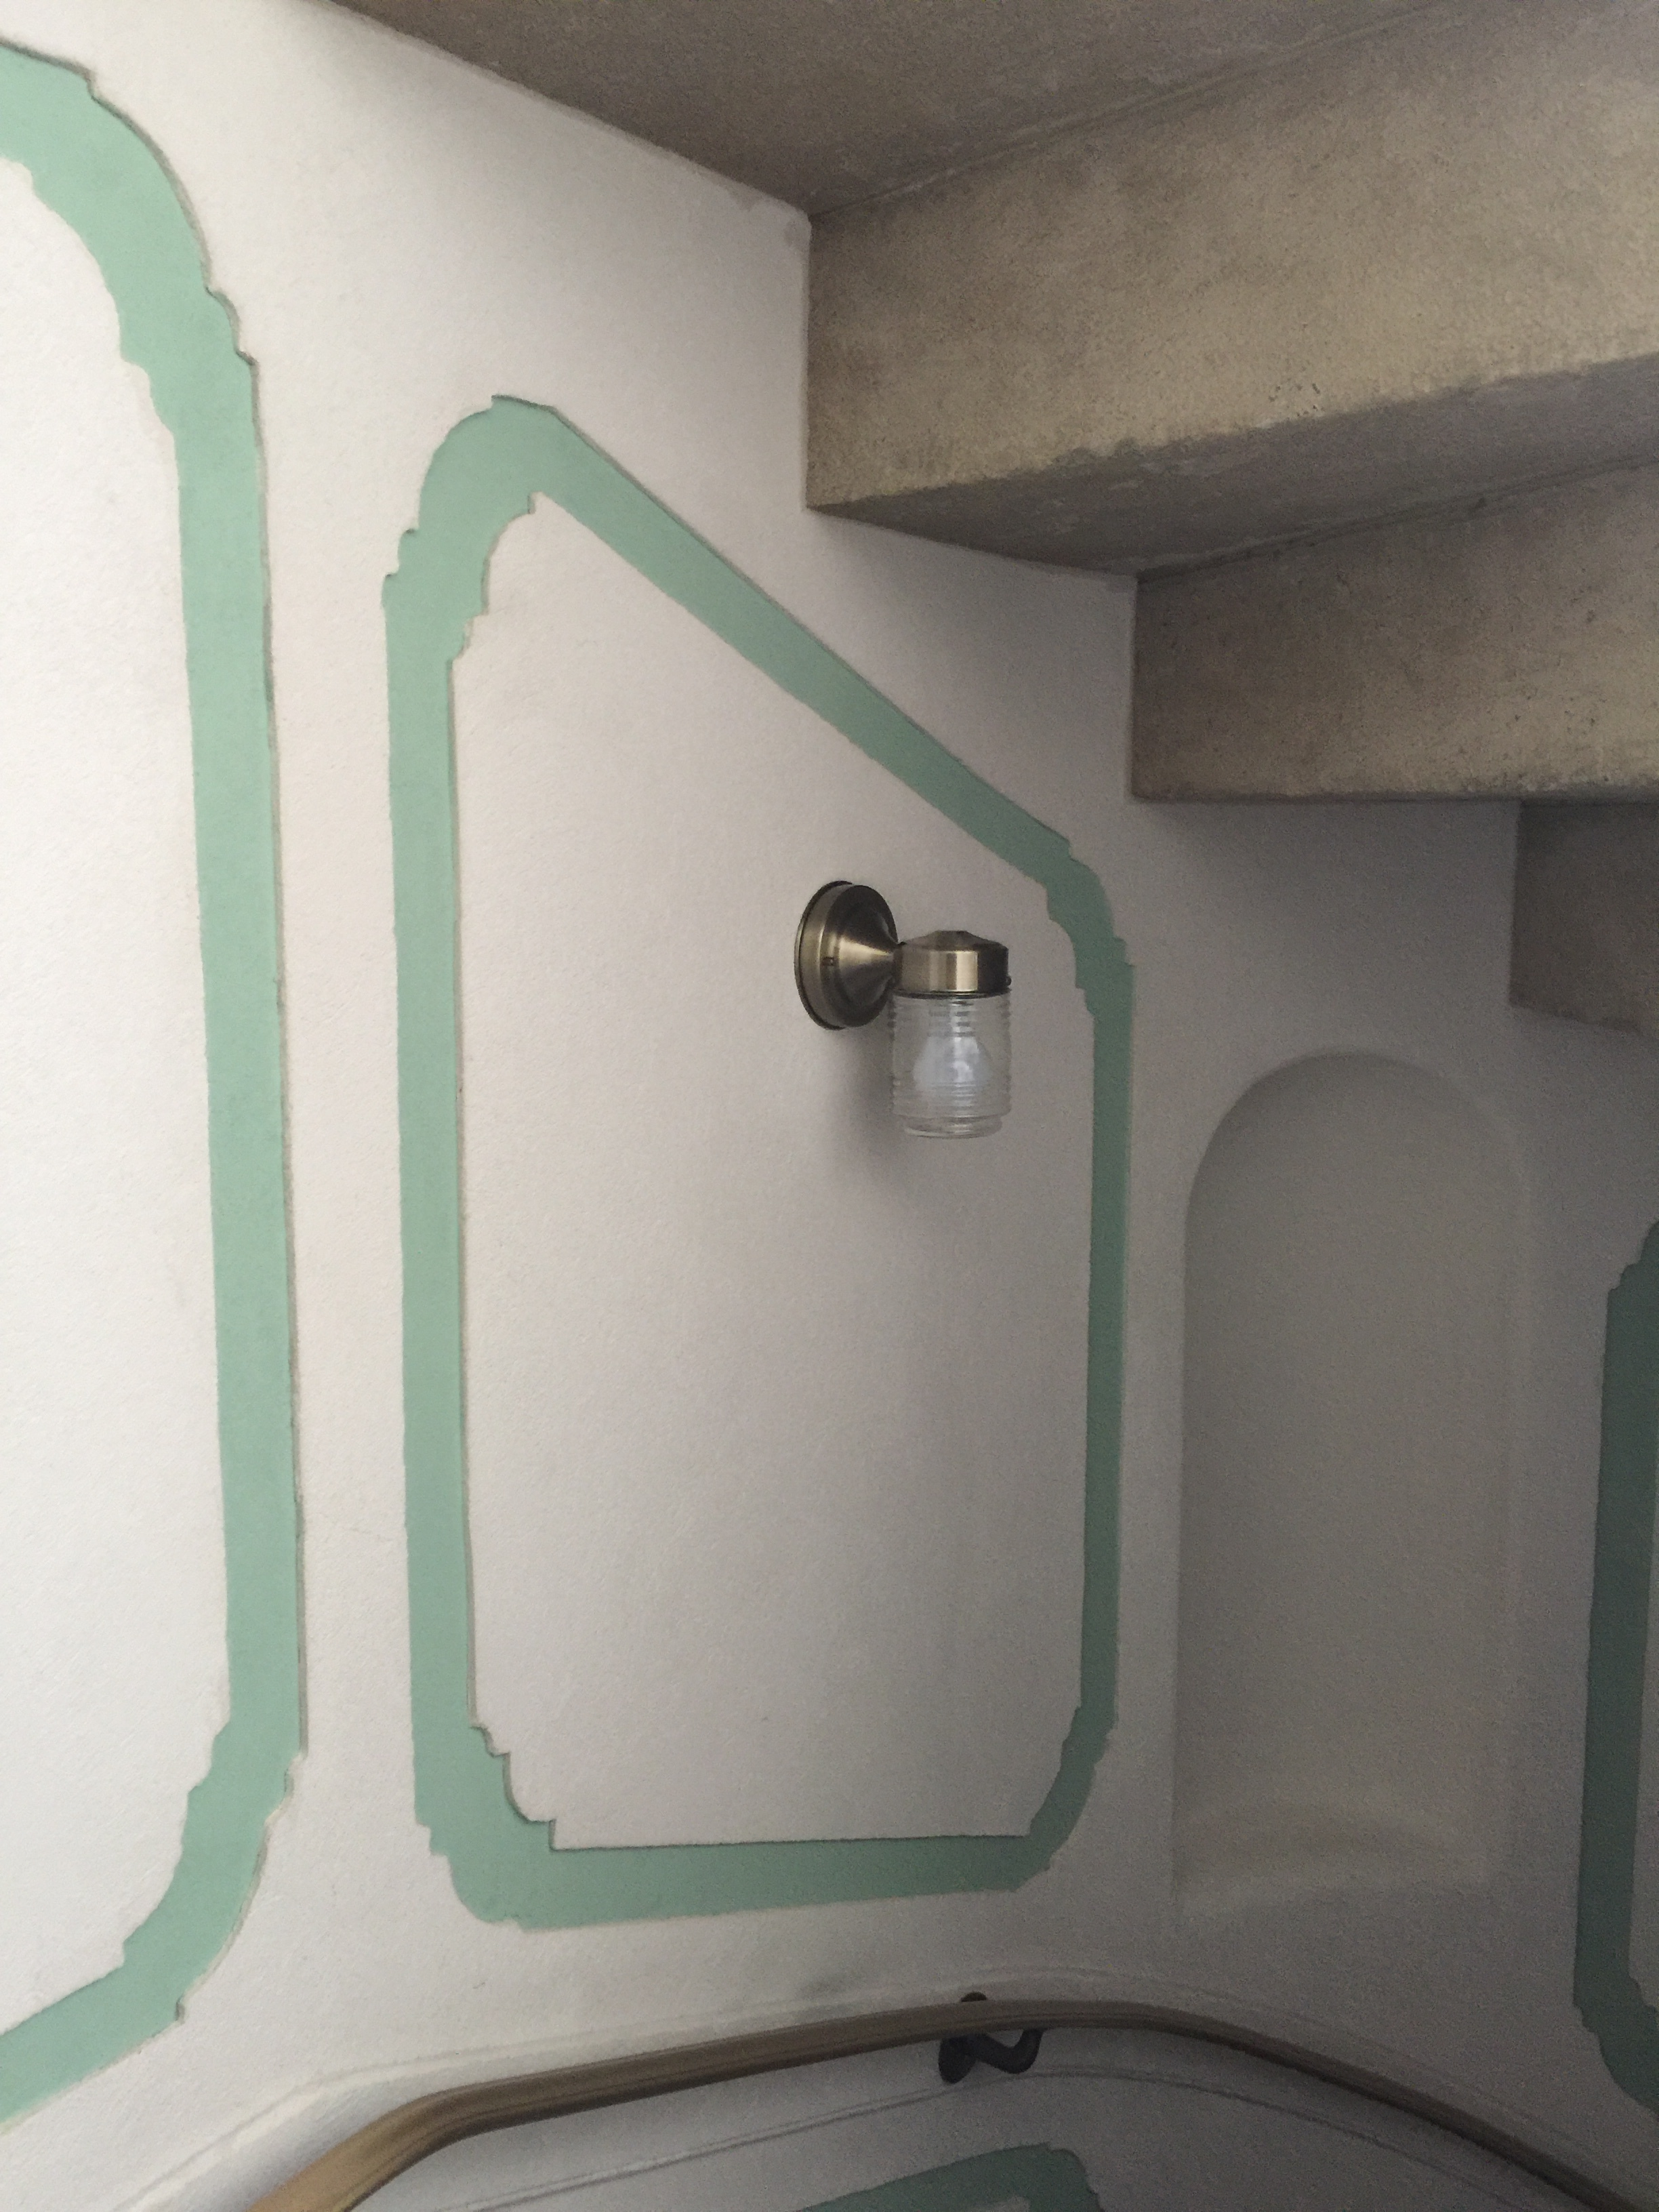 DECORATIVE TRIM - Custom plaster wall trim along the roof access stair